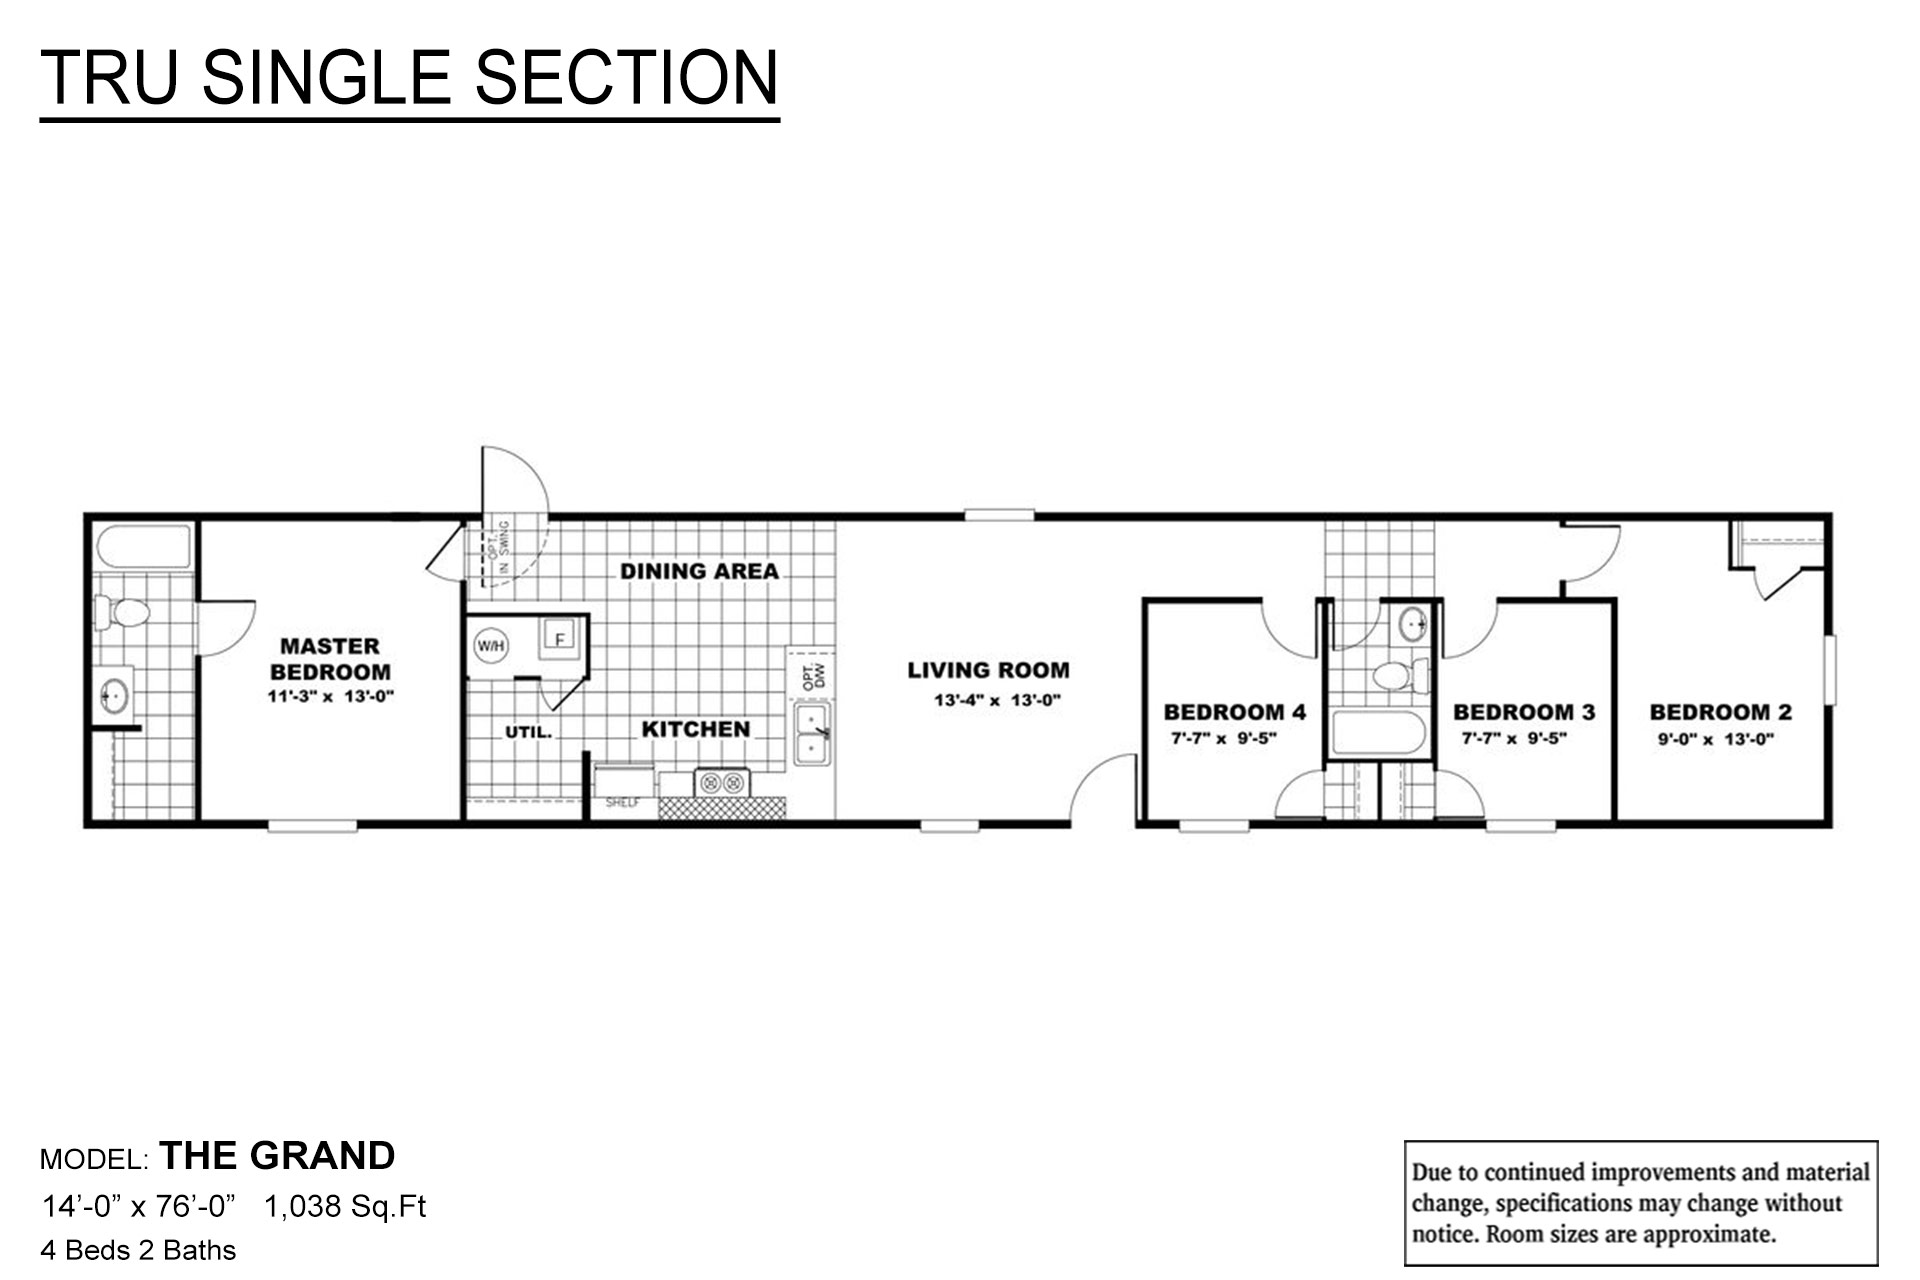 TRU Single Section The Grand Layout